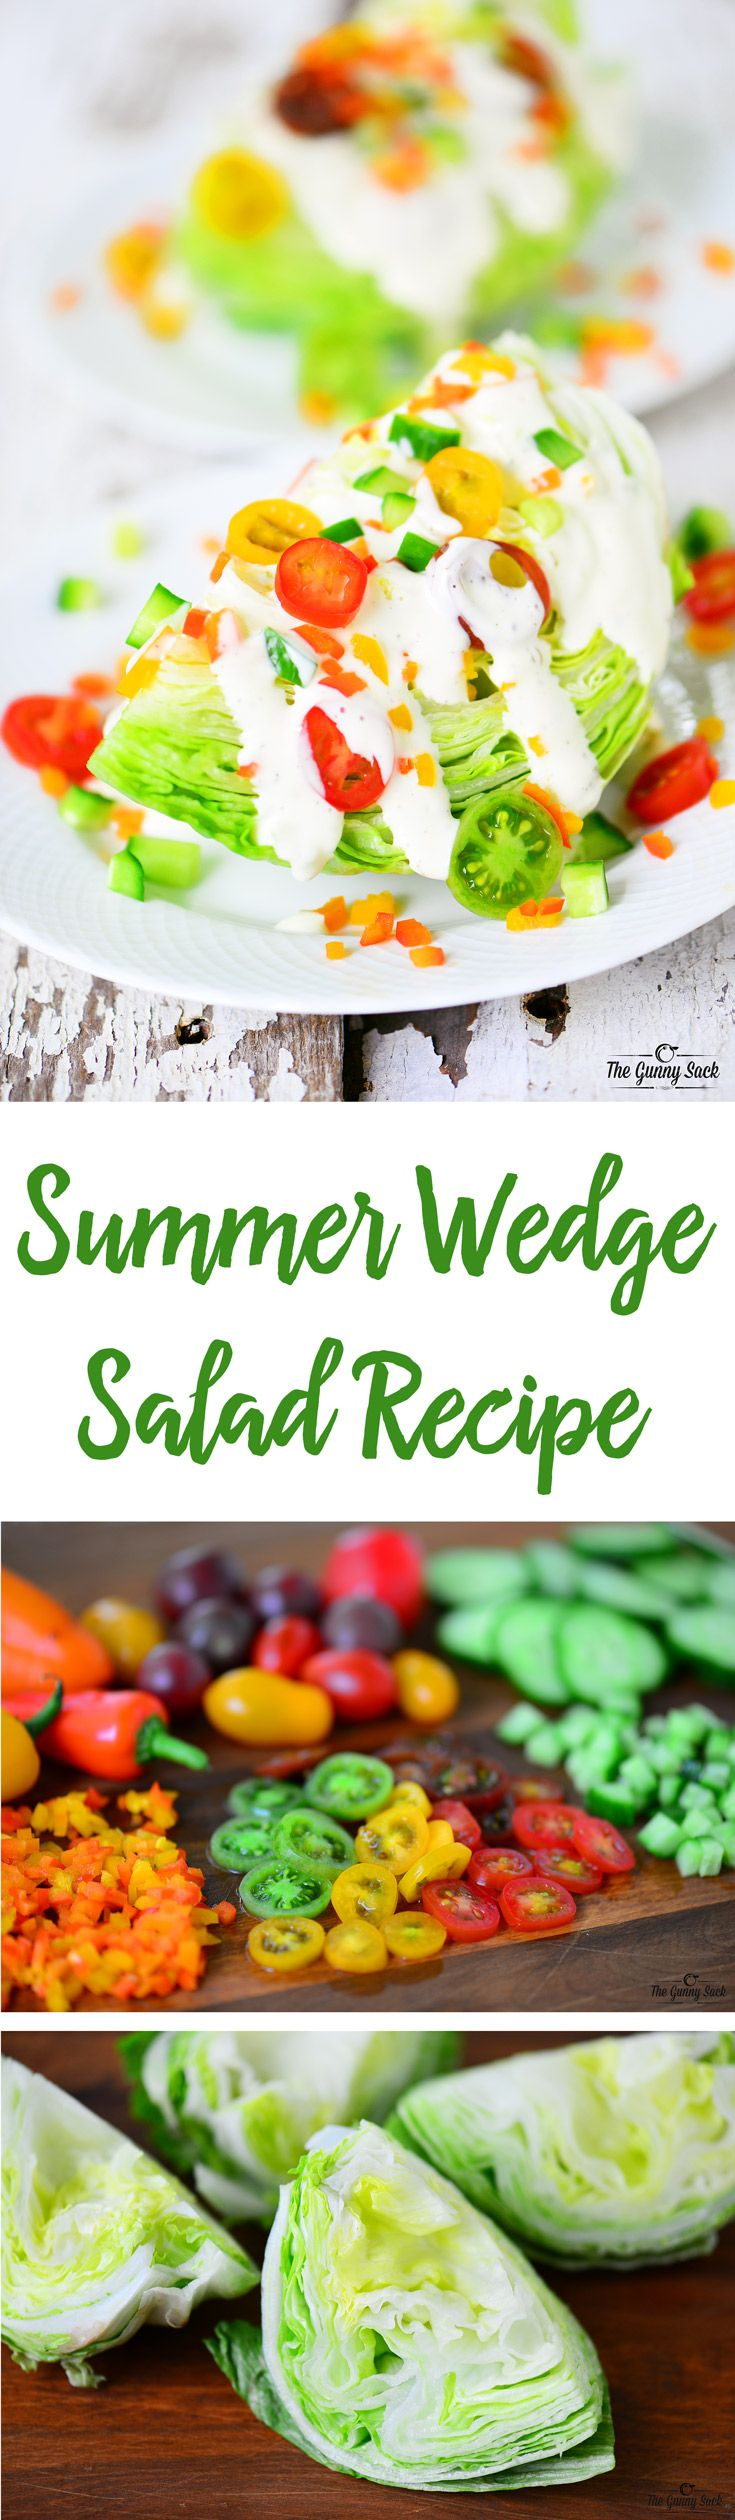 LOVE this as a summer side dish or even a light lunch! Would be great with crumbled bacon and shredded cheese too.